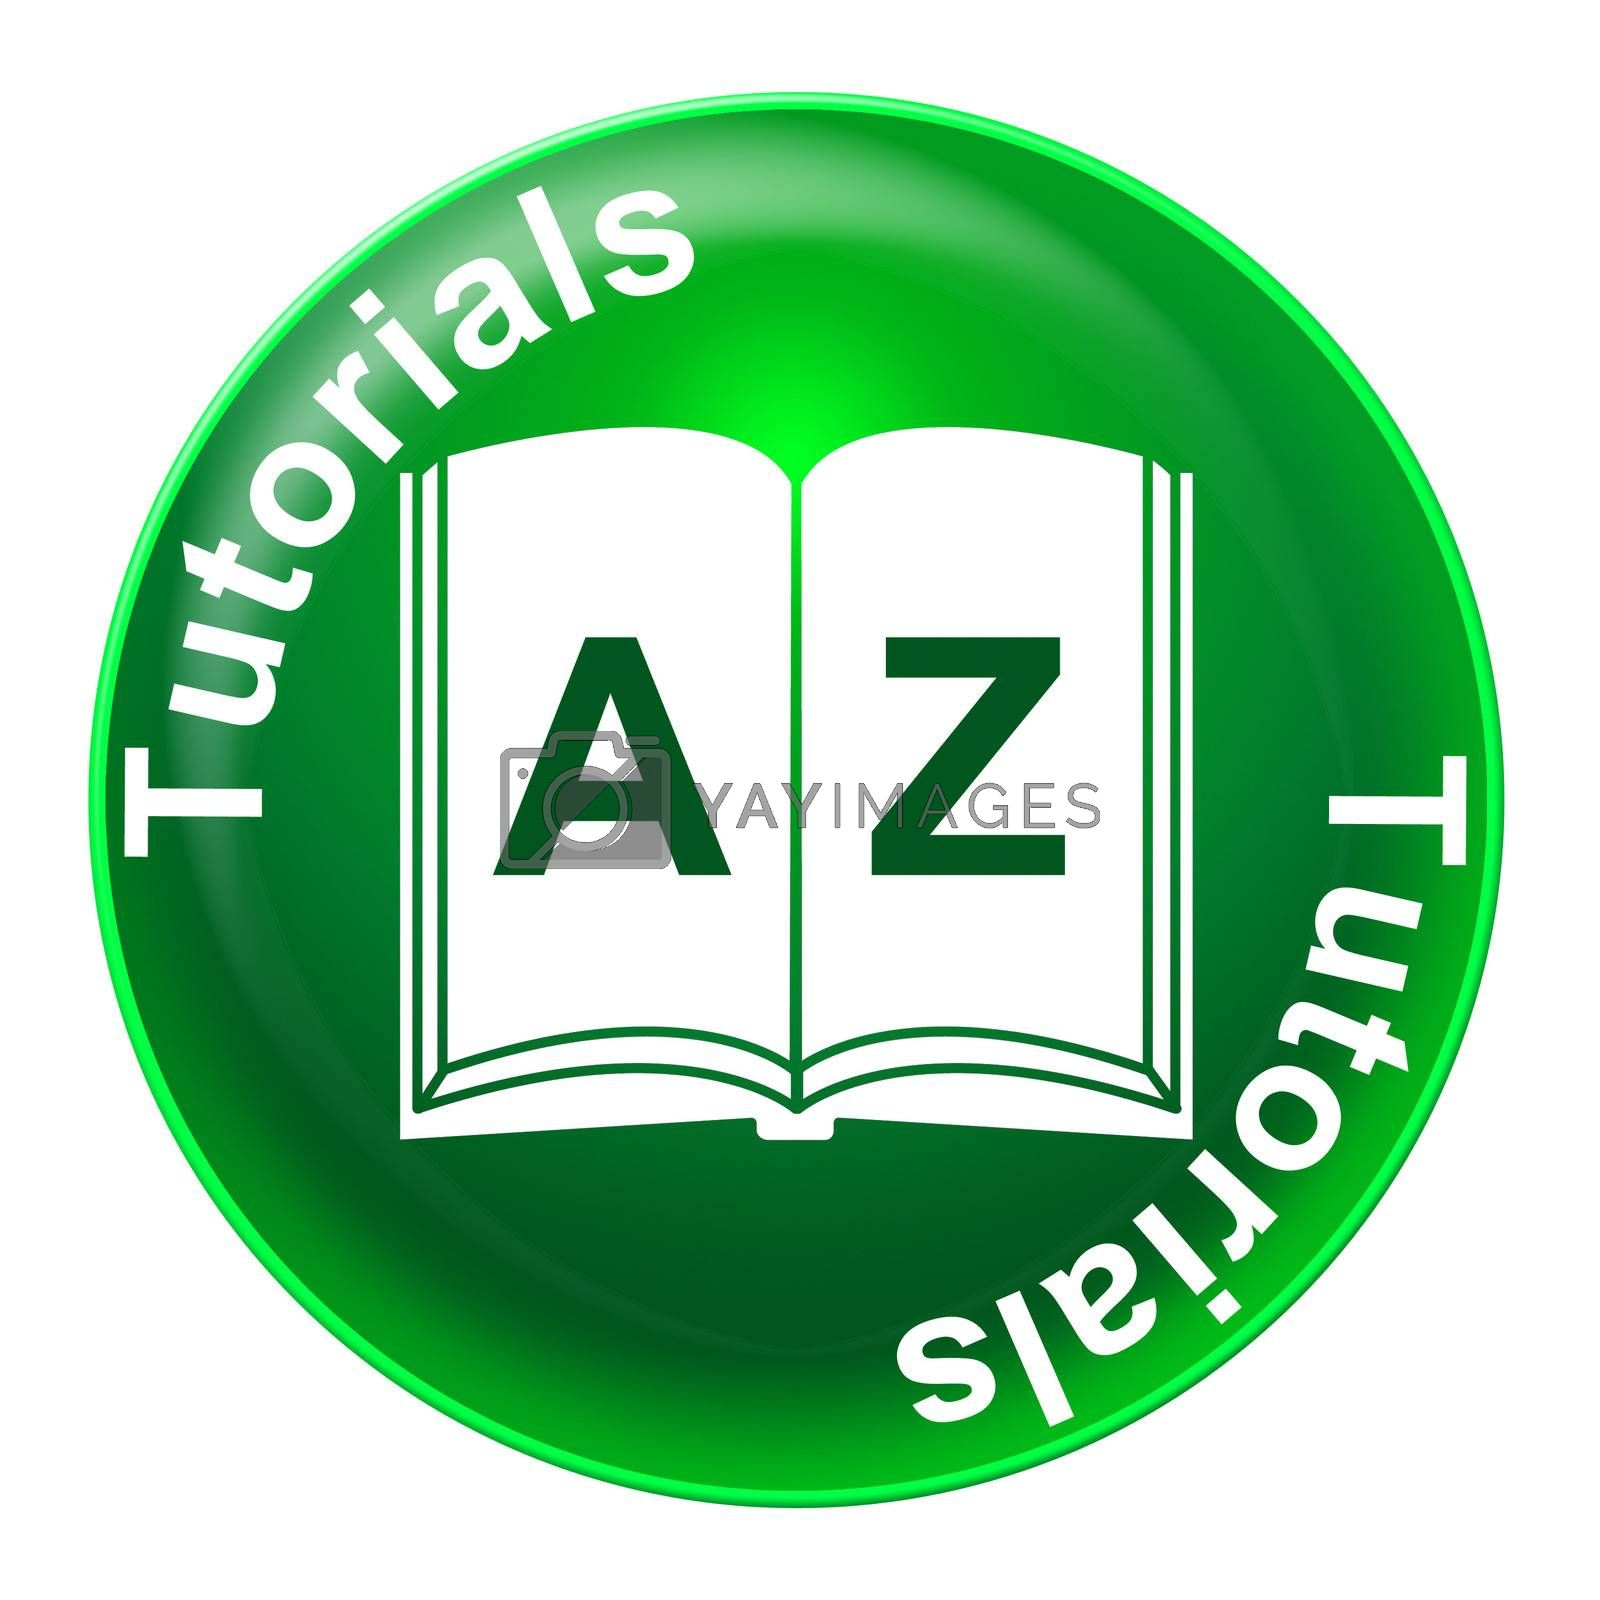 Tutorials Badge Represents Tuition Development And Learned by stuartmiles